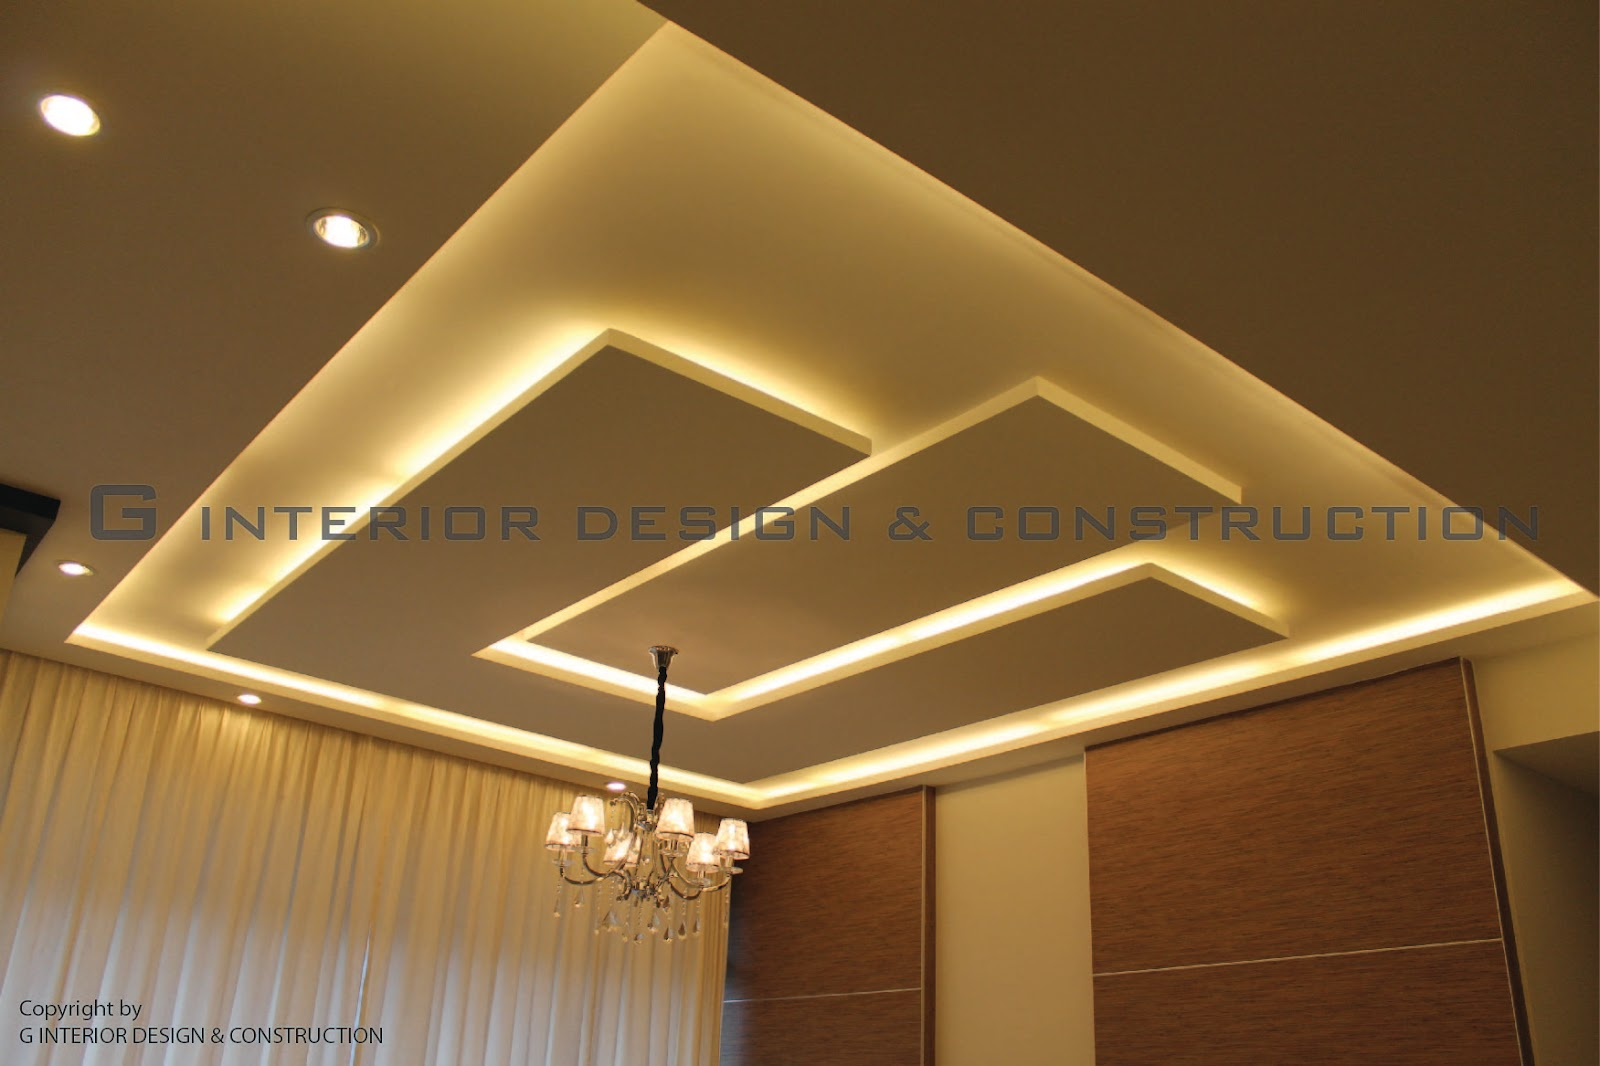 New home designs latest modern homes ceiling designs for Home ceiling design images